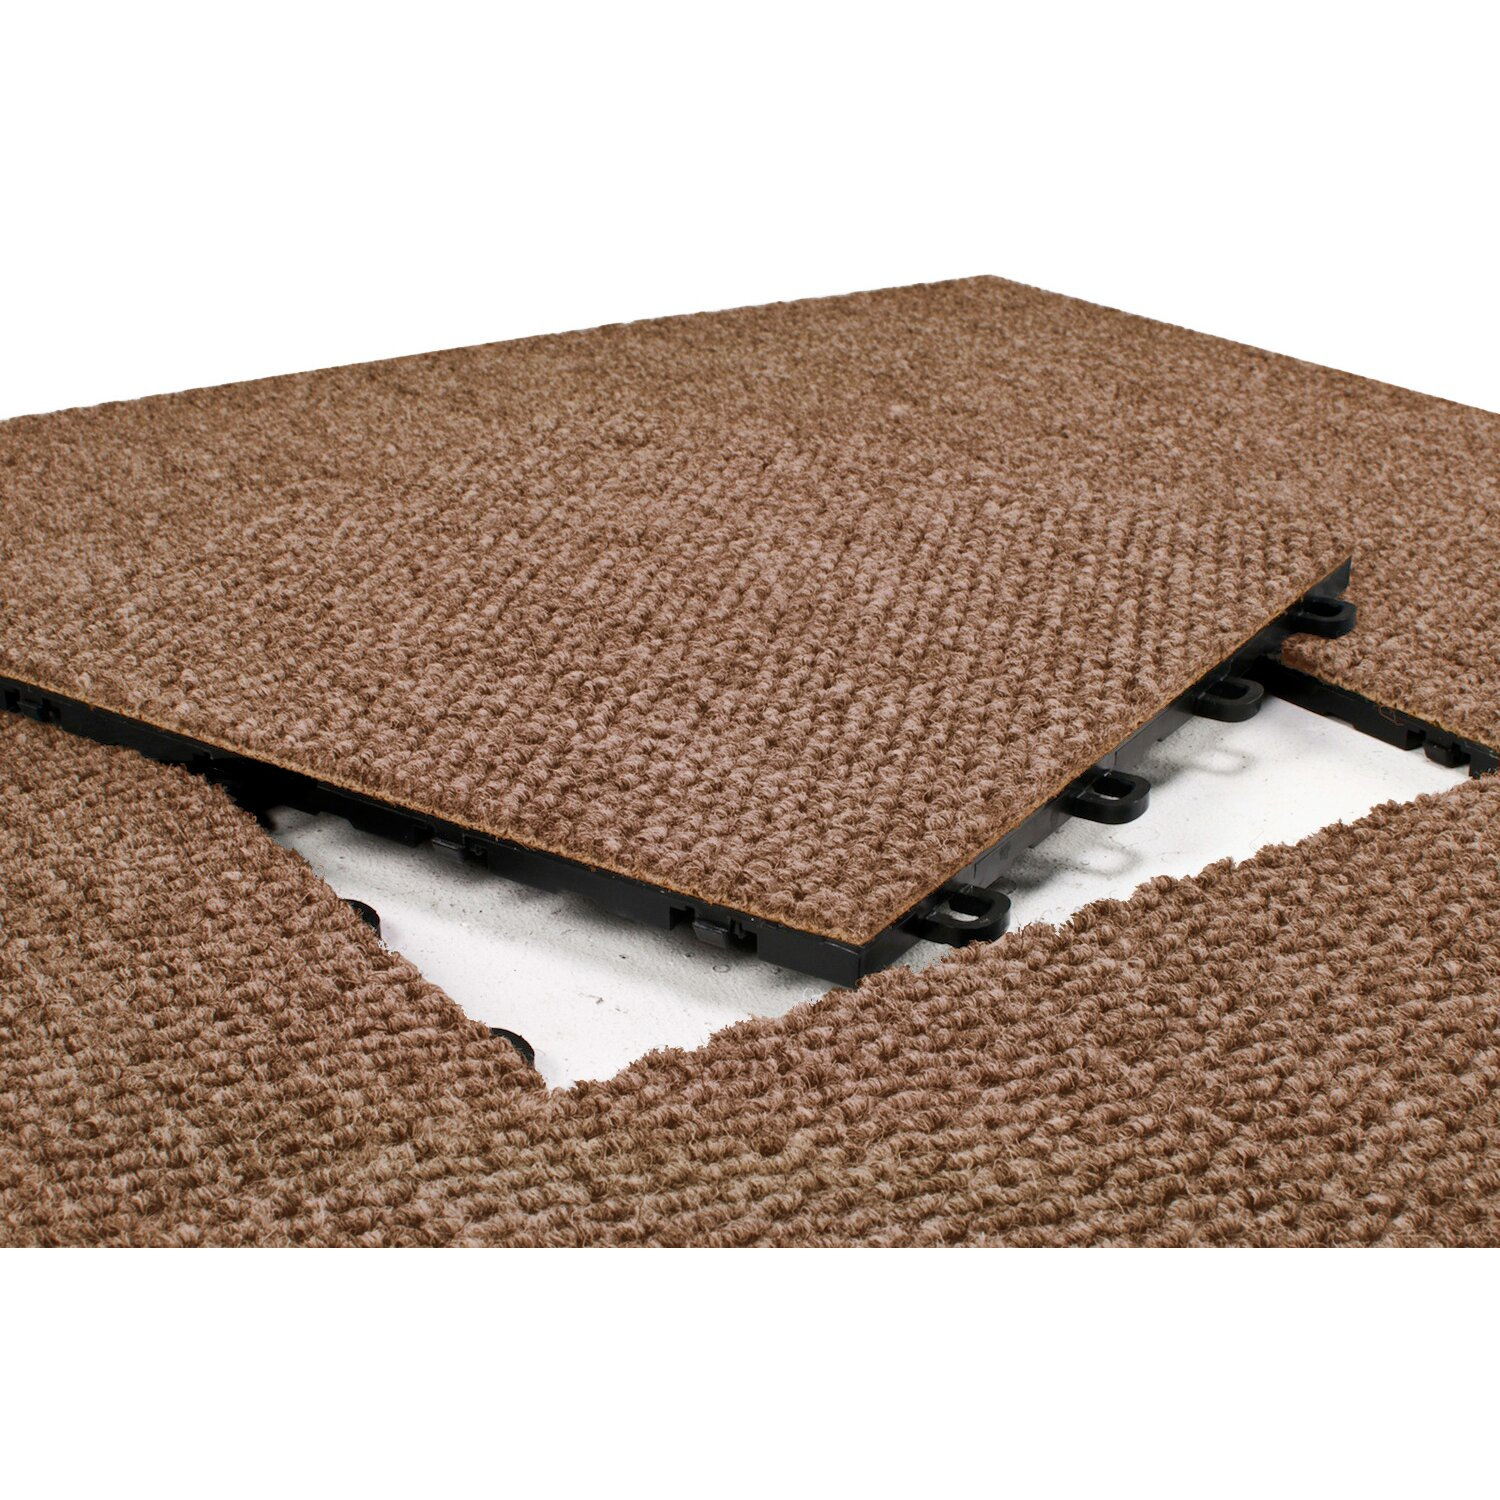 Premium Interlocking Basement Floor Carpet Tile In Brown By BlockTile